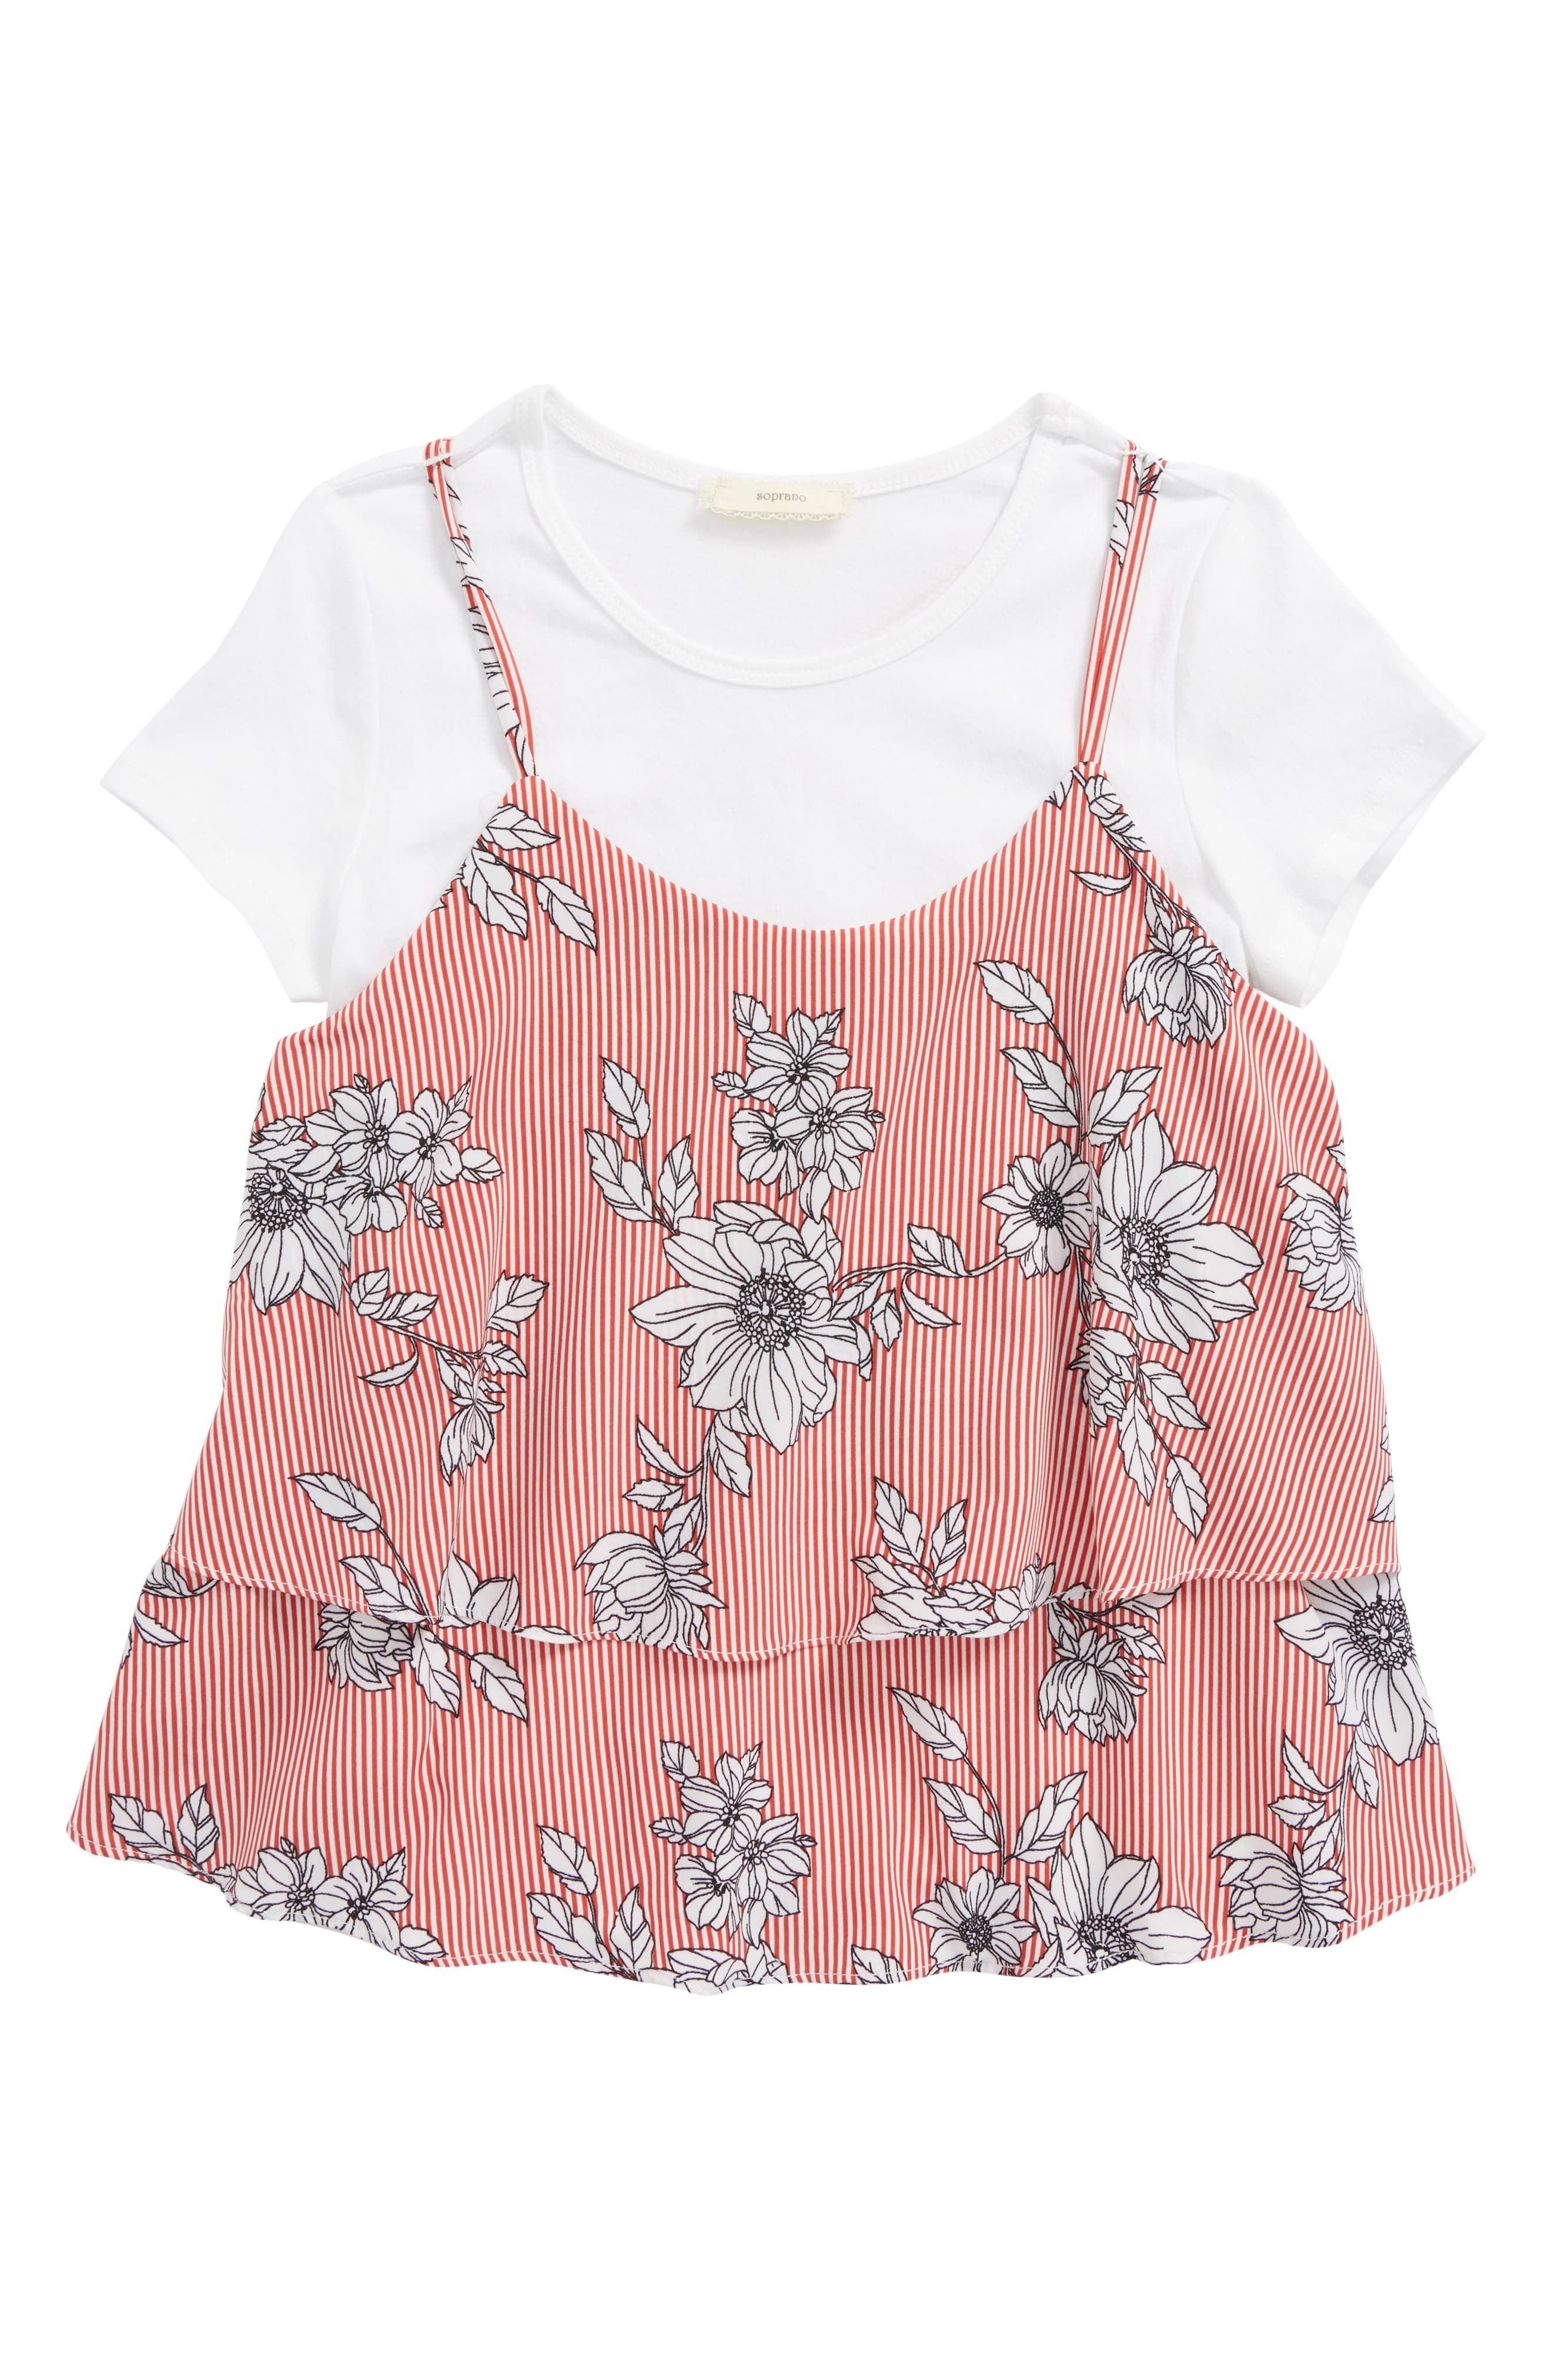 Flouce Mixed Media Top,                         Main,                         color, Red/ White